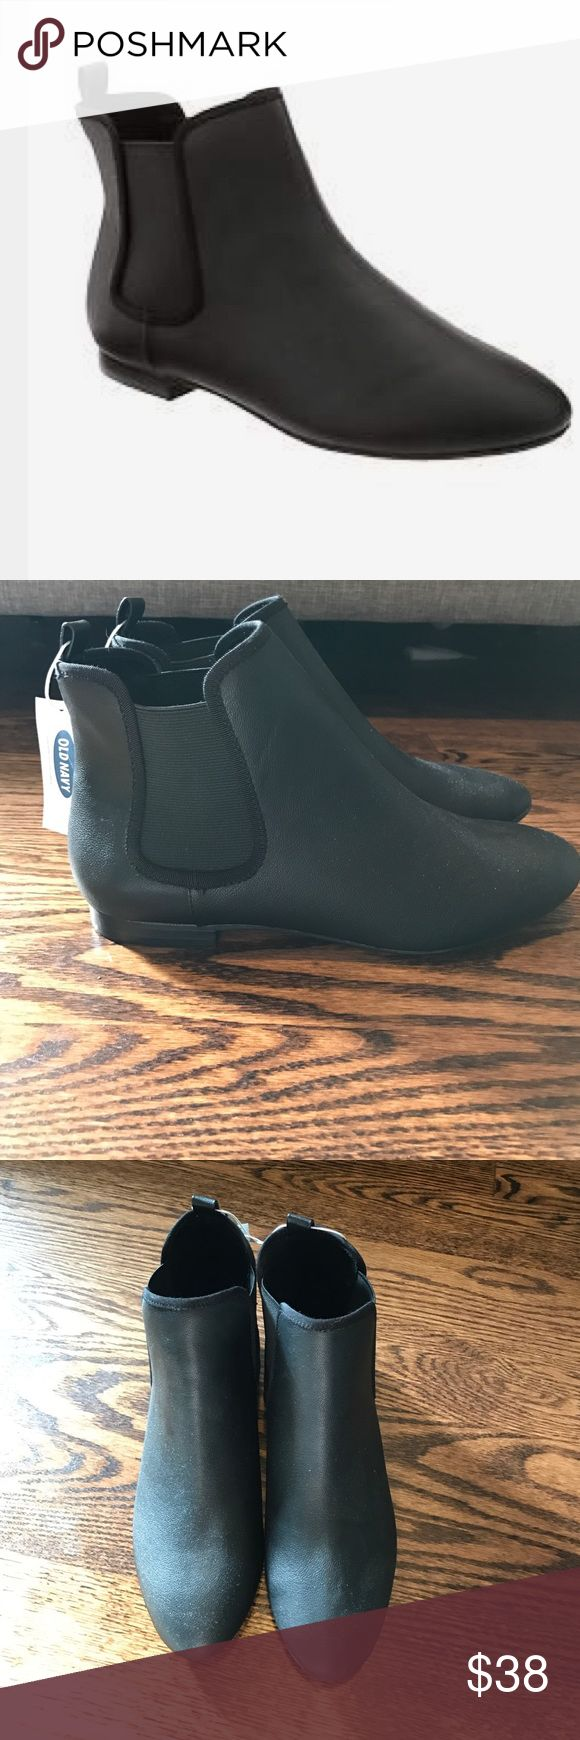 Old Navy Chelsea Ankle Boots black NEW WITH TAGS Black Old Navy Chelsea ankle boots in black size 8. New with tags, never worn. Old Navy Shoes Ankle Boots & Booties